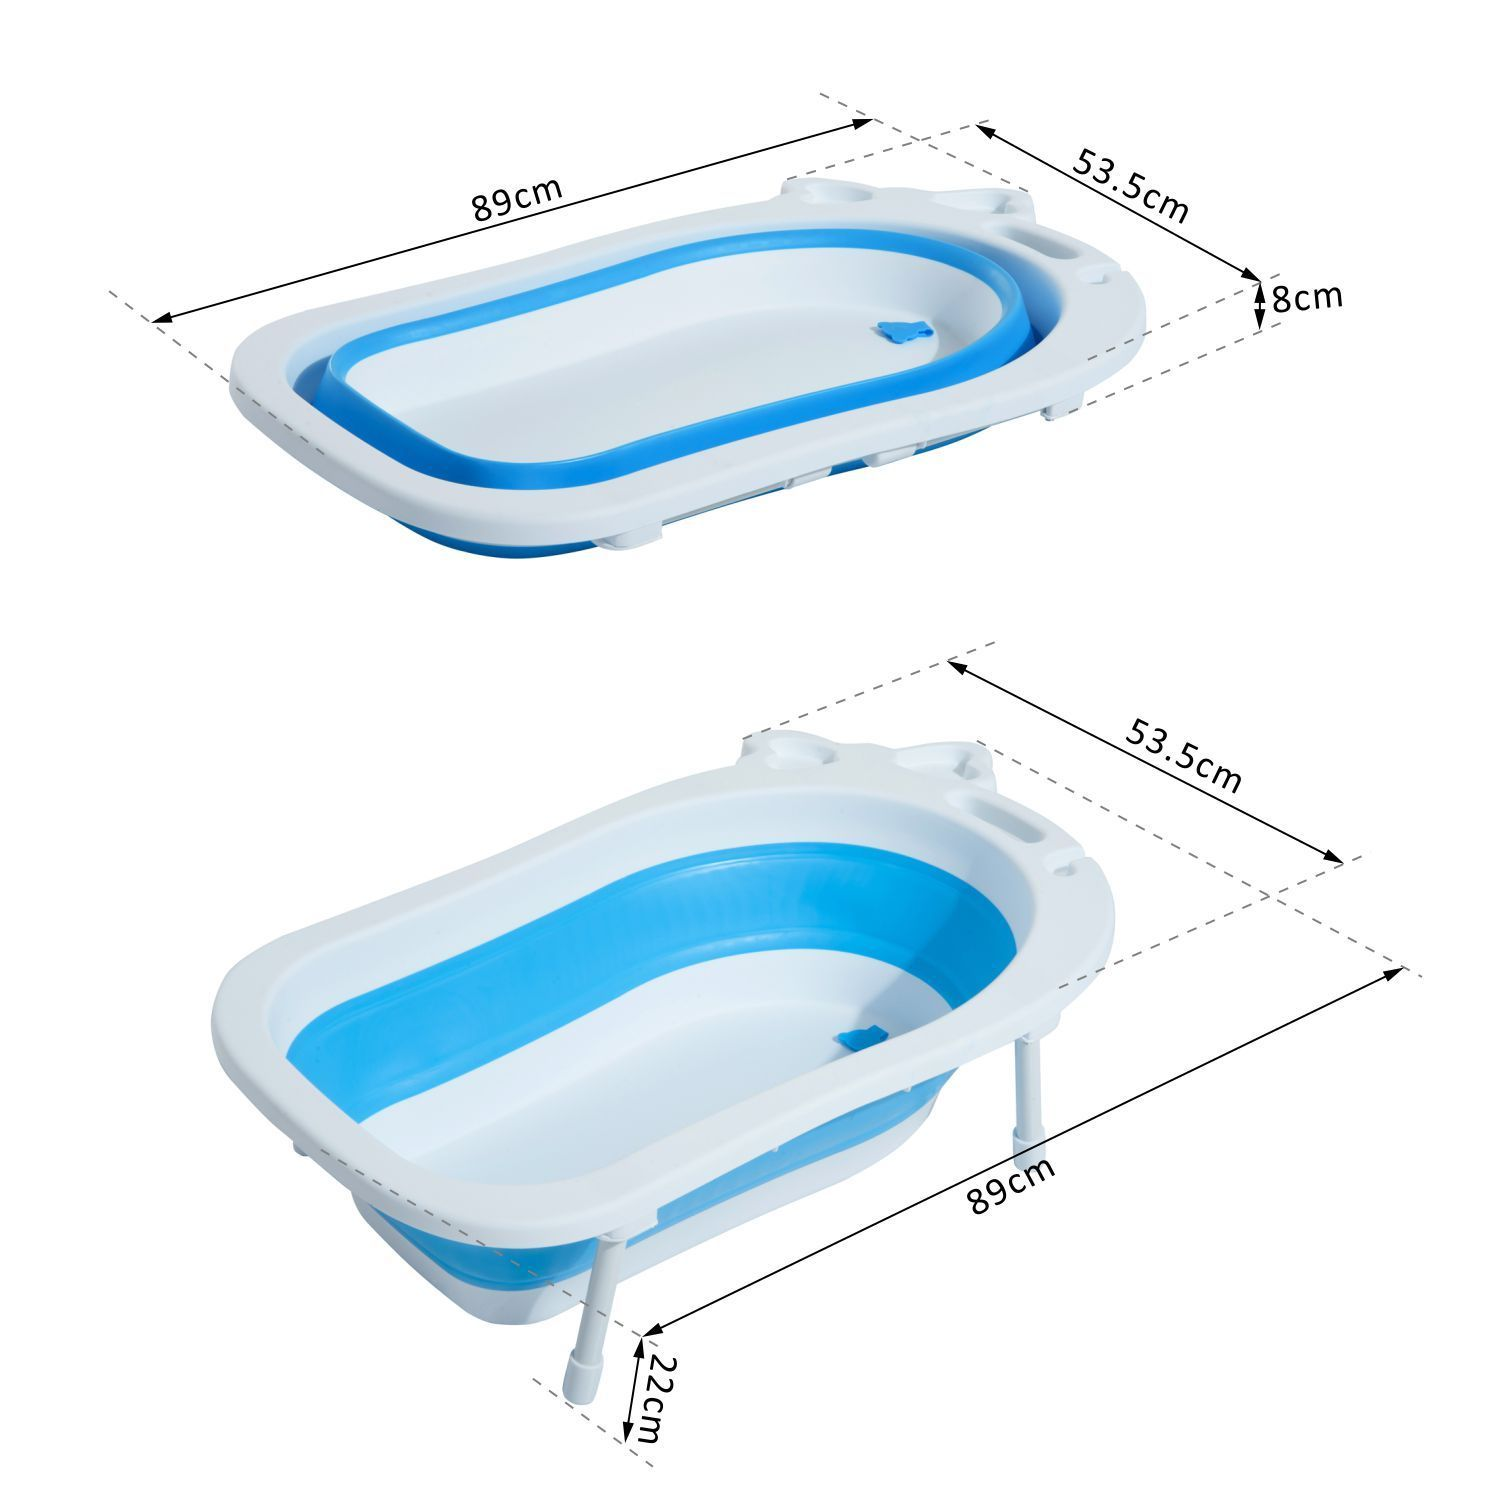 Baby Bath Tub Foldable Toddler Kids Infant Plastic Play Wash Basket ...